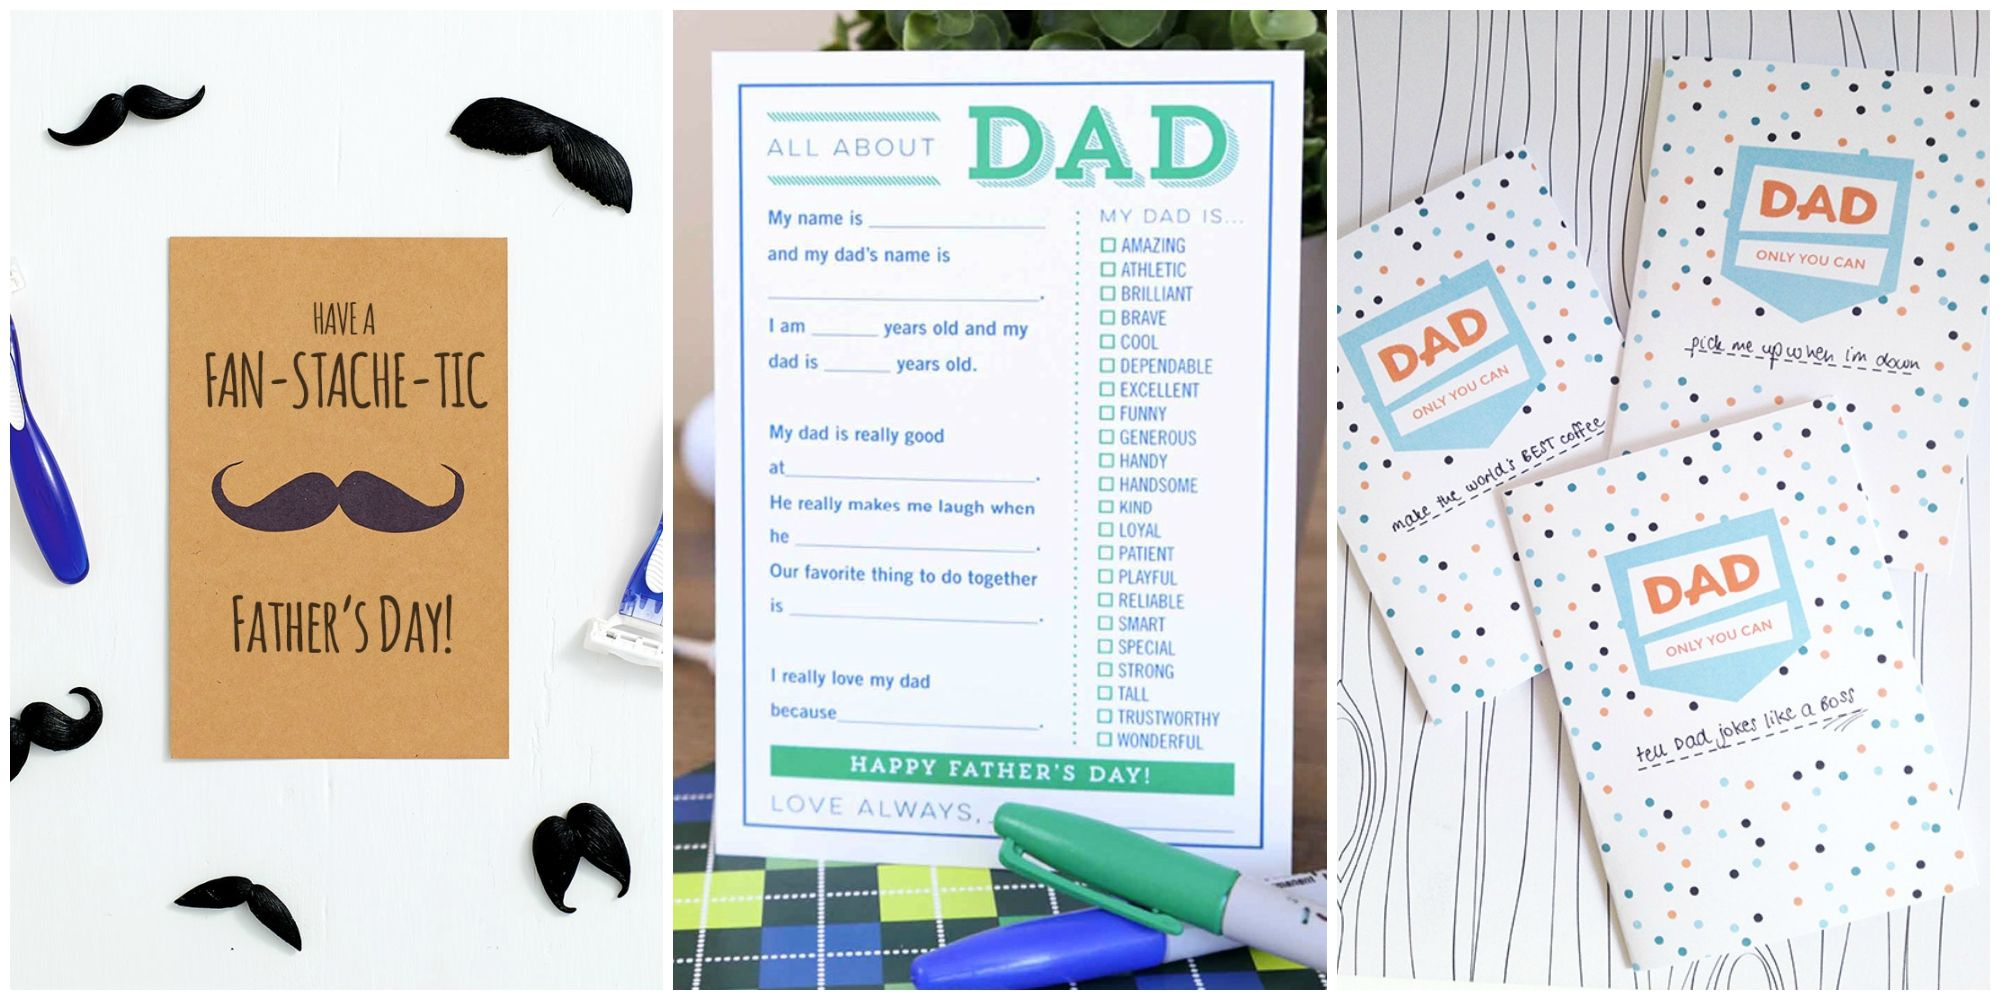 photo about Deal a Meal Cards Printable called 25 Printable Fathers Working day Playing cards - Totally free Printable Playing cards For